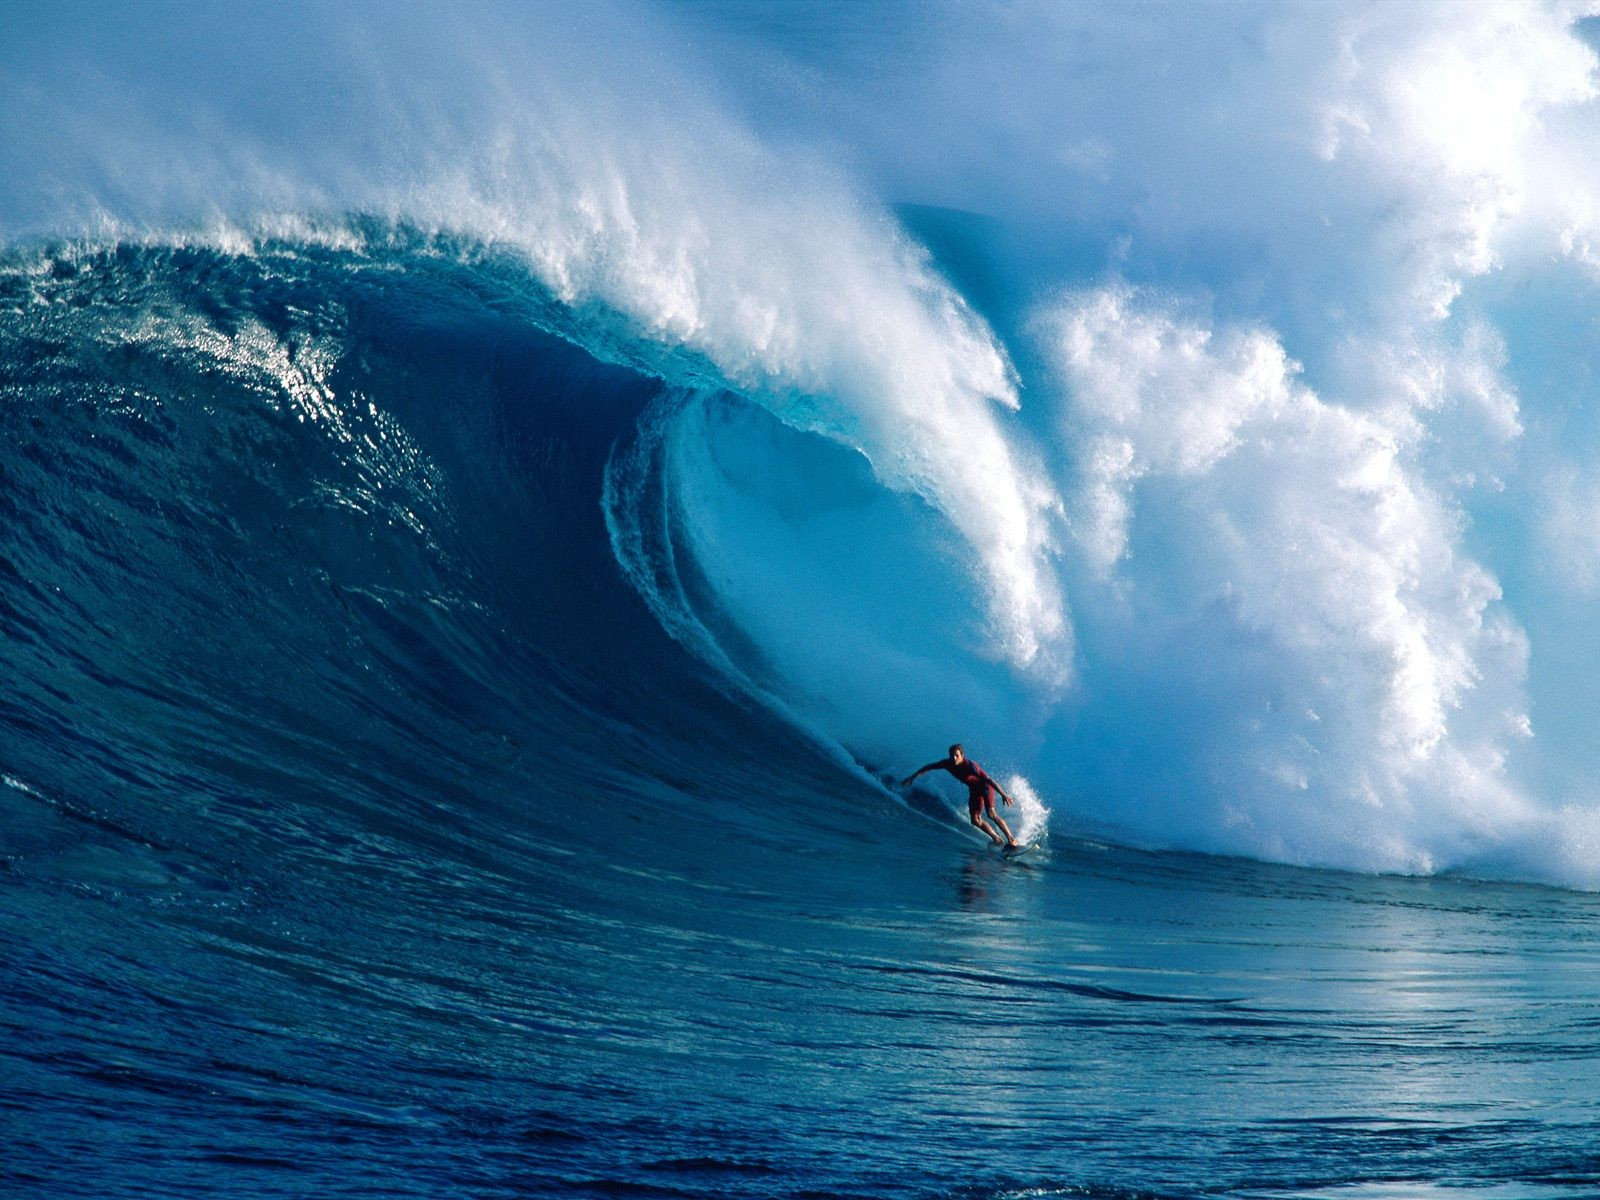 Cool Pictures Extreme Sports Surfing Pictures Surreal Pictures 1600x1200